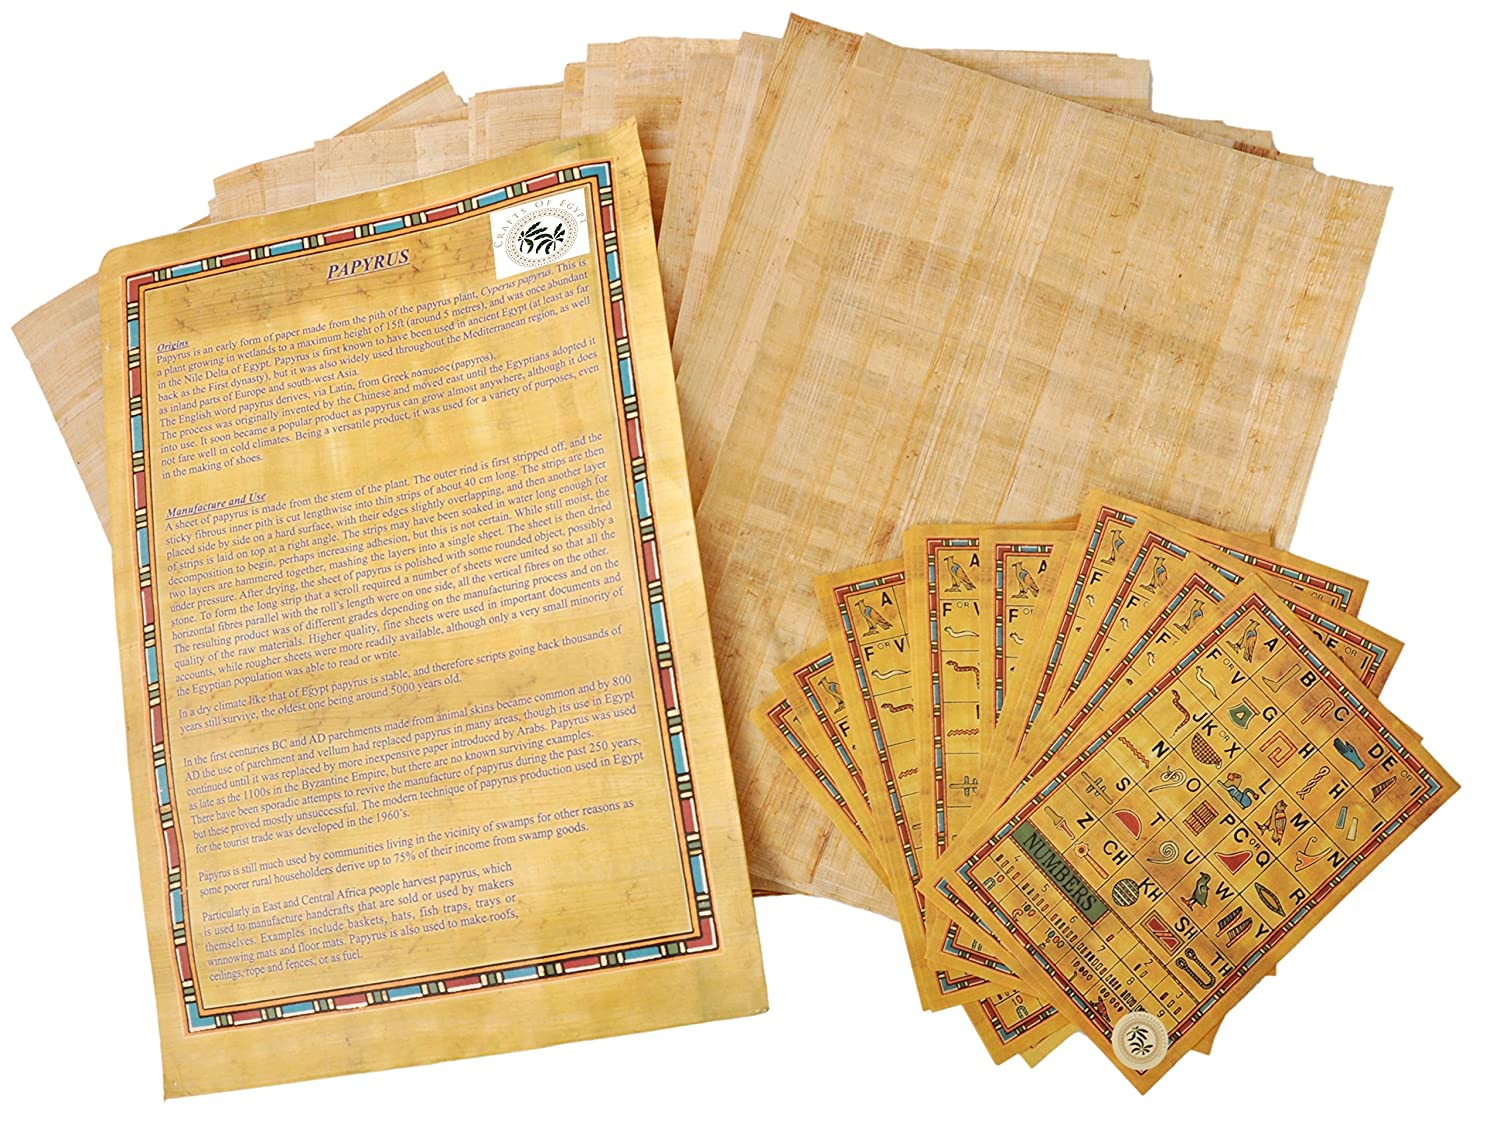 10 Blank Egyptian Papyrus Sheets for Art Projects and Schools 8x12in 20x30cm CraftsofEgypt PP-D-Blank-10